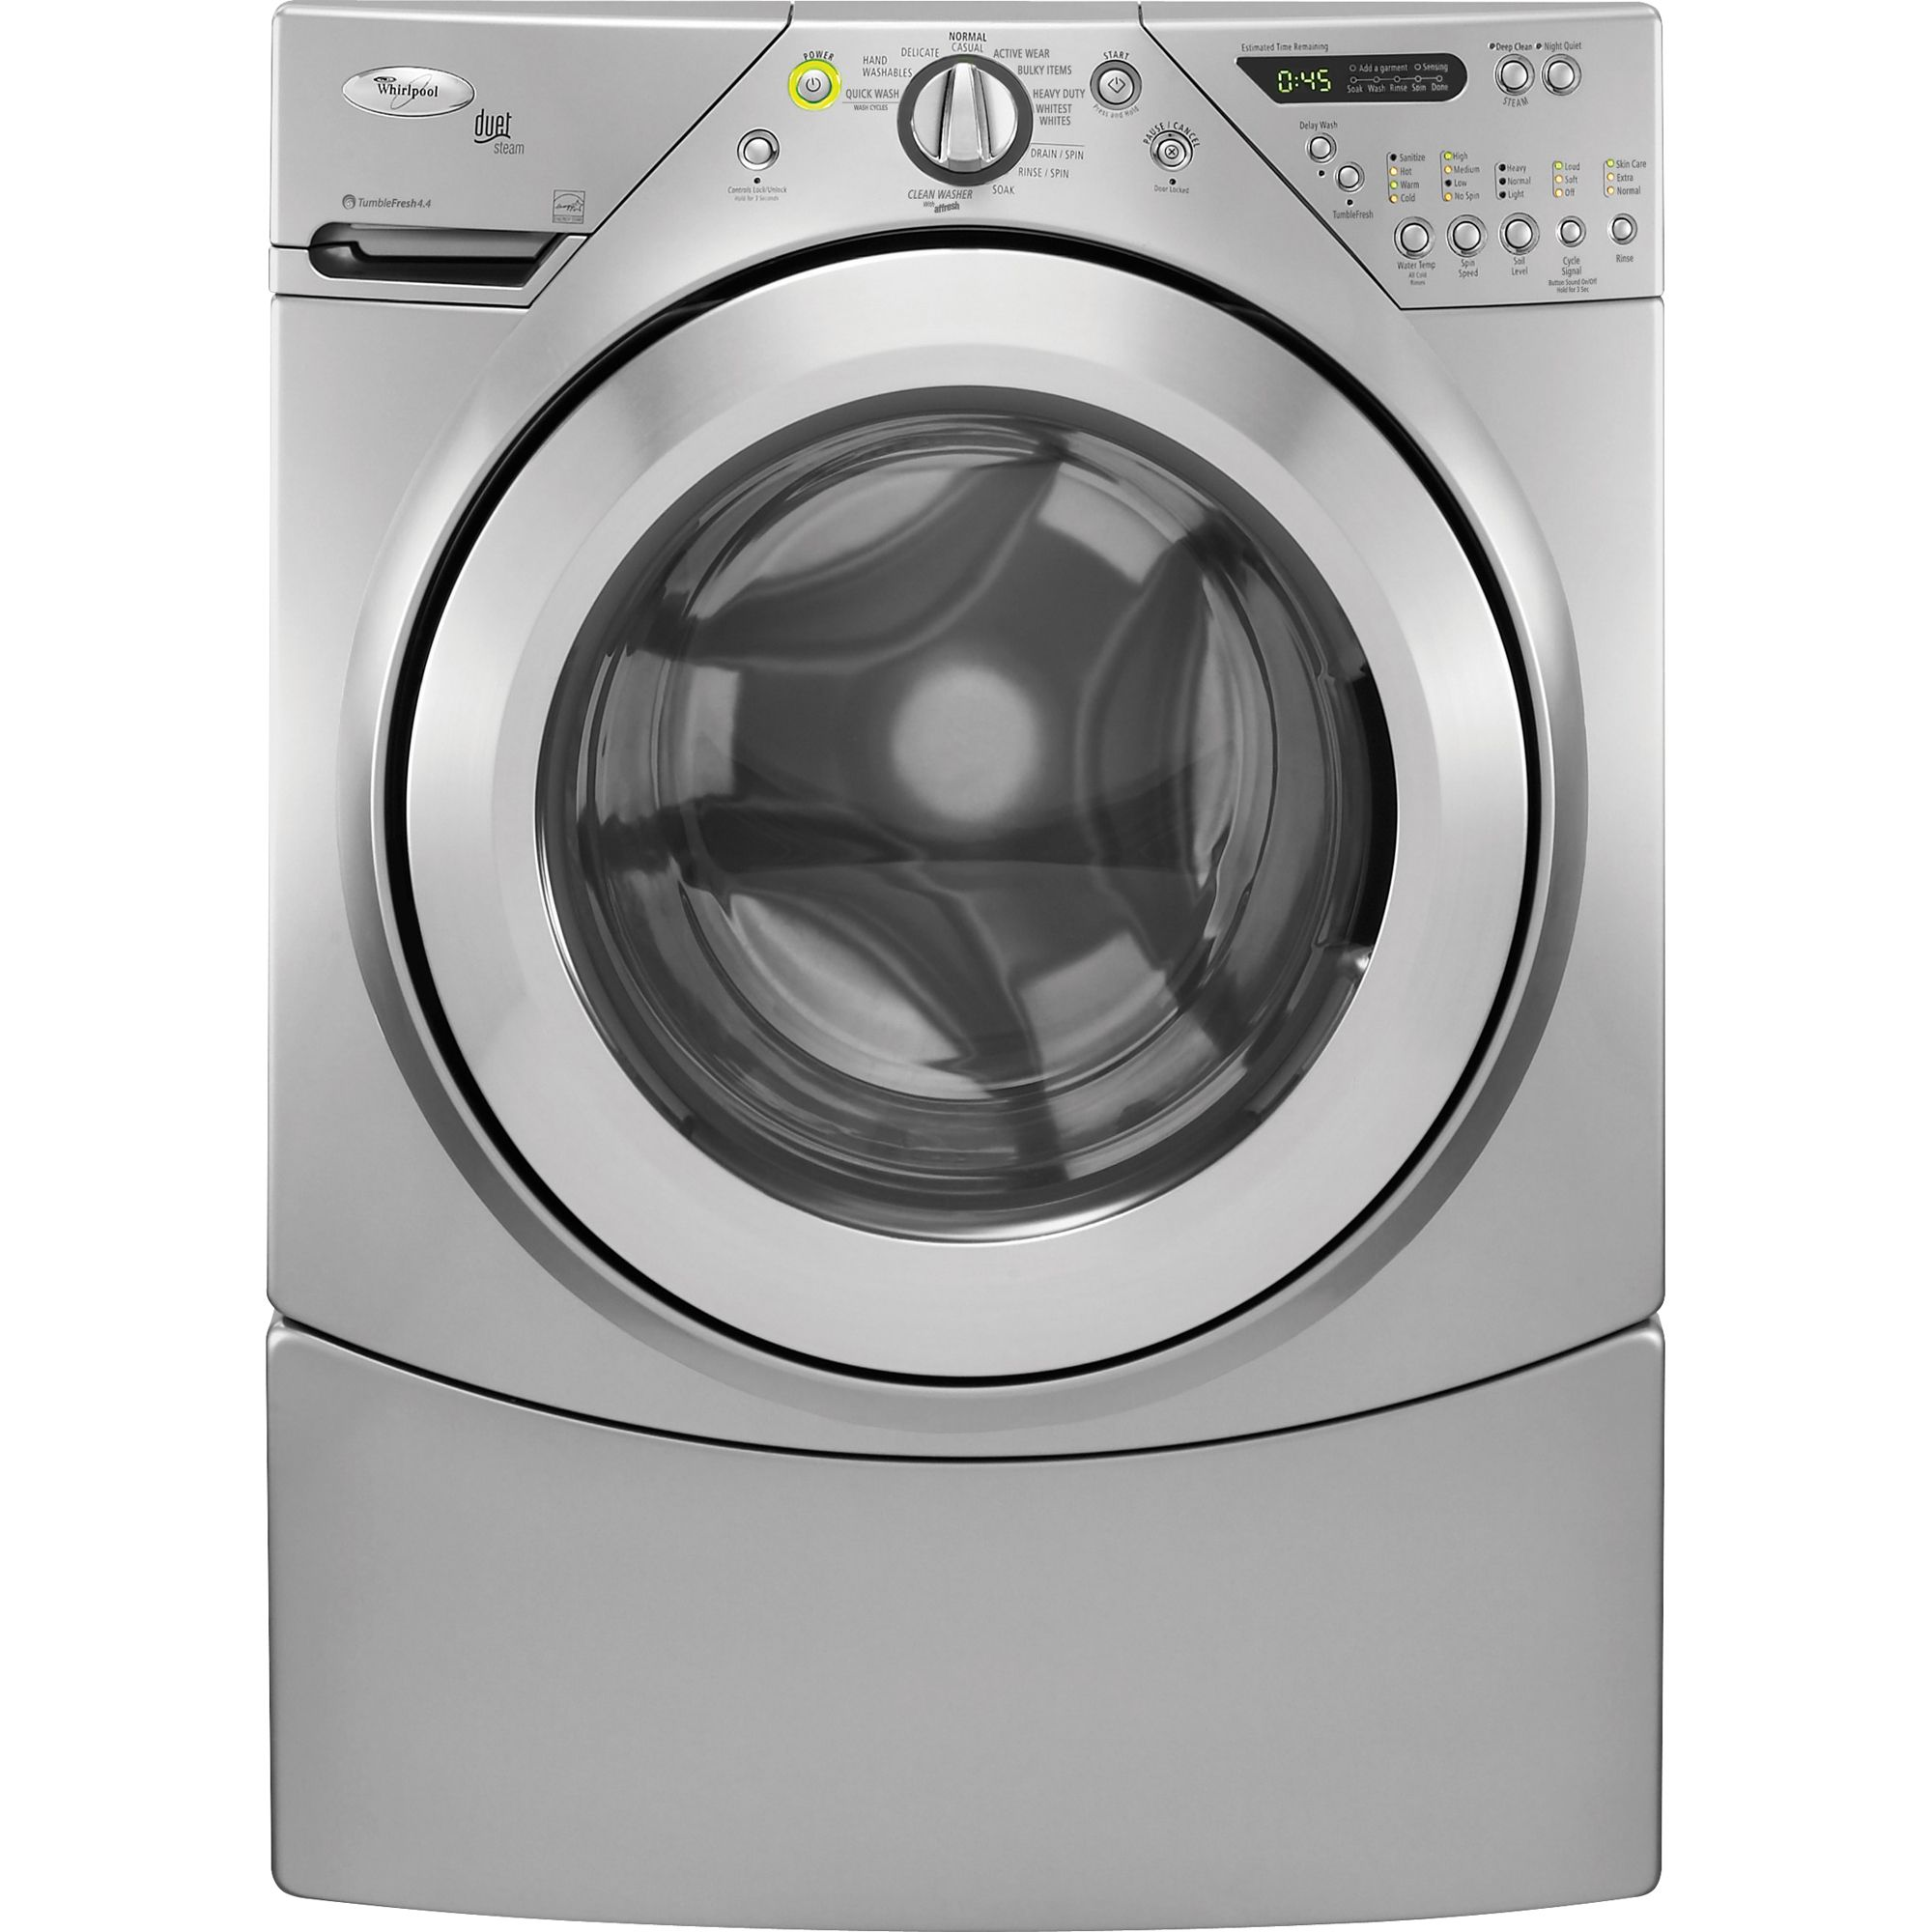 Whirpool washer maintenance